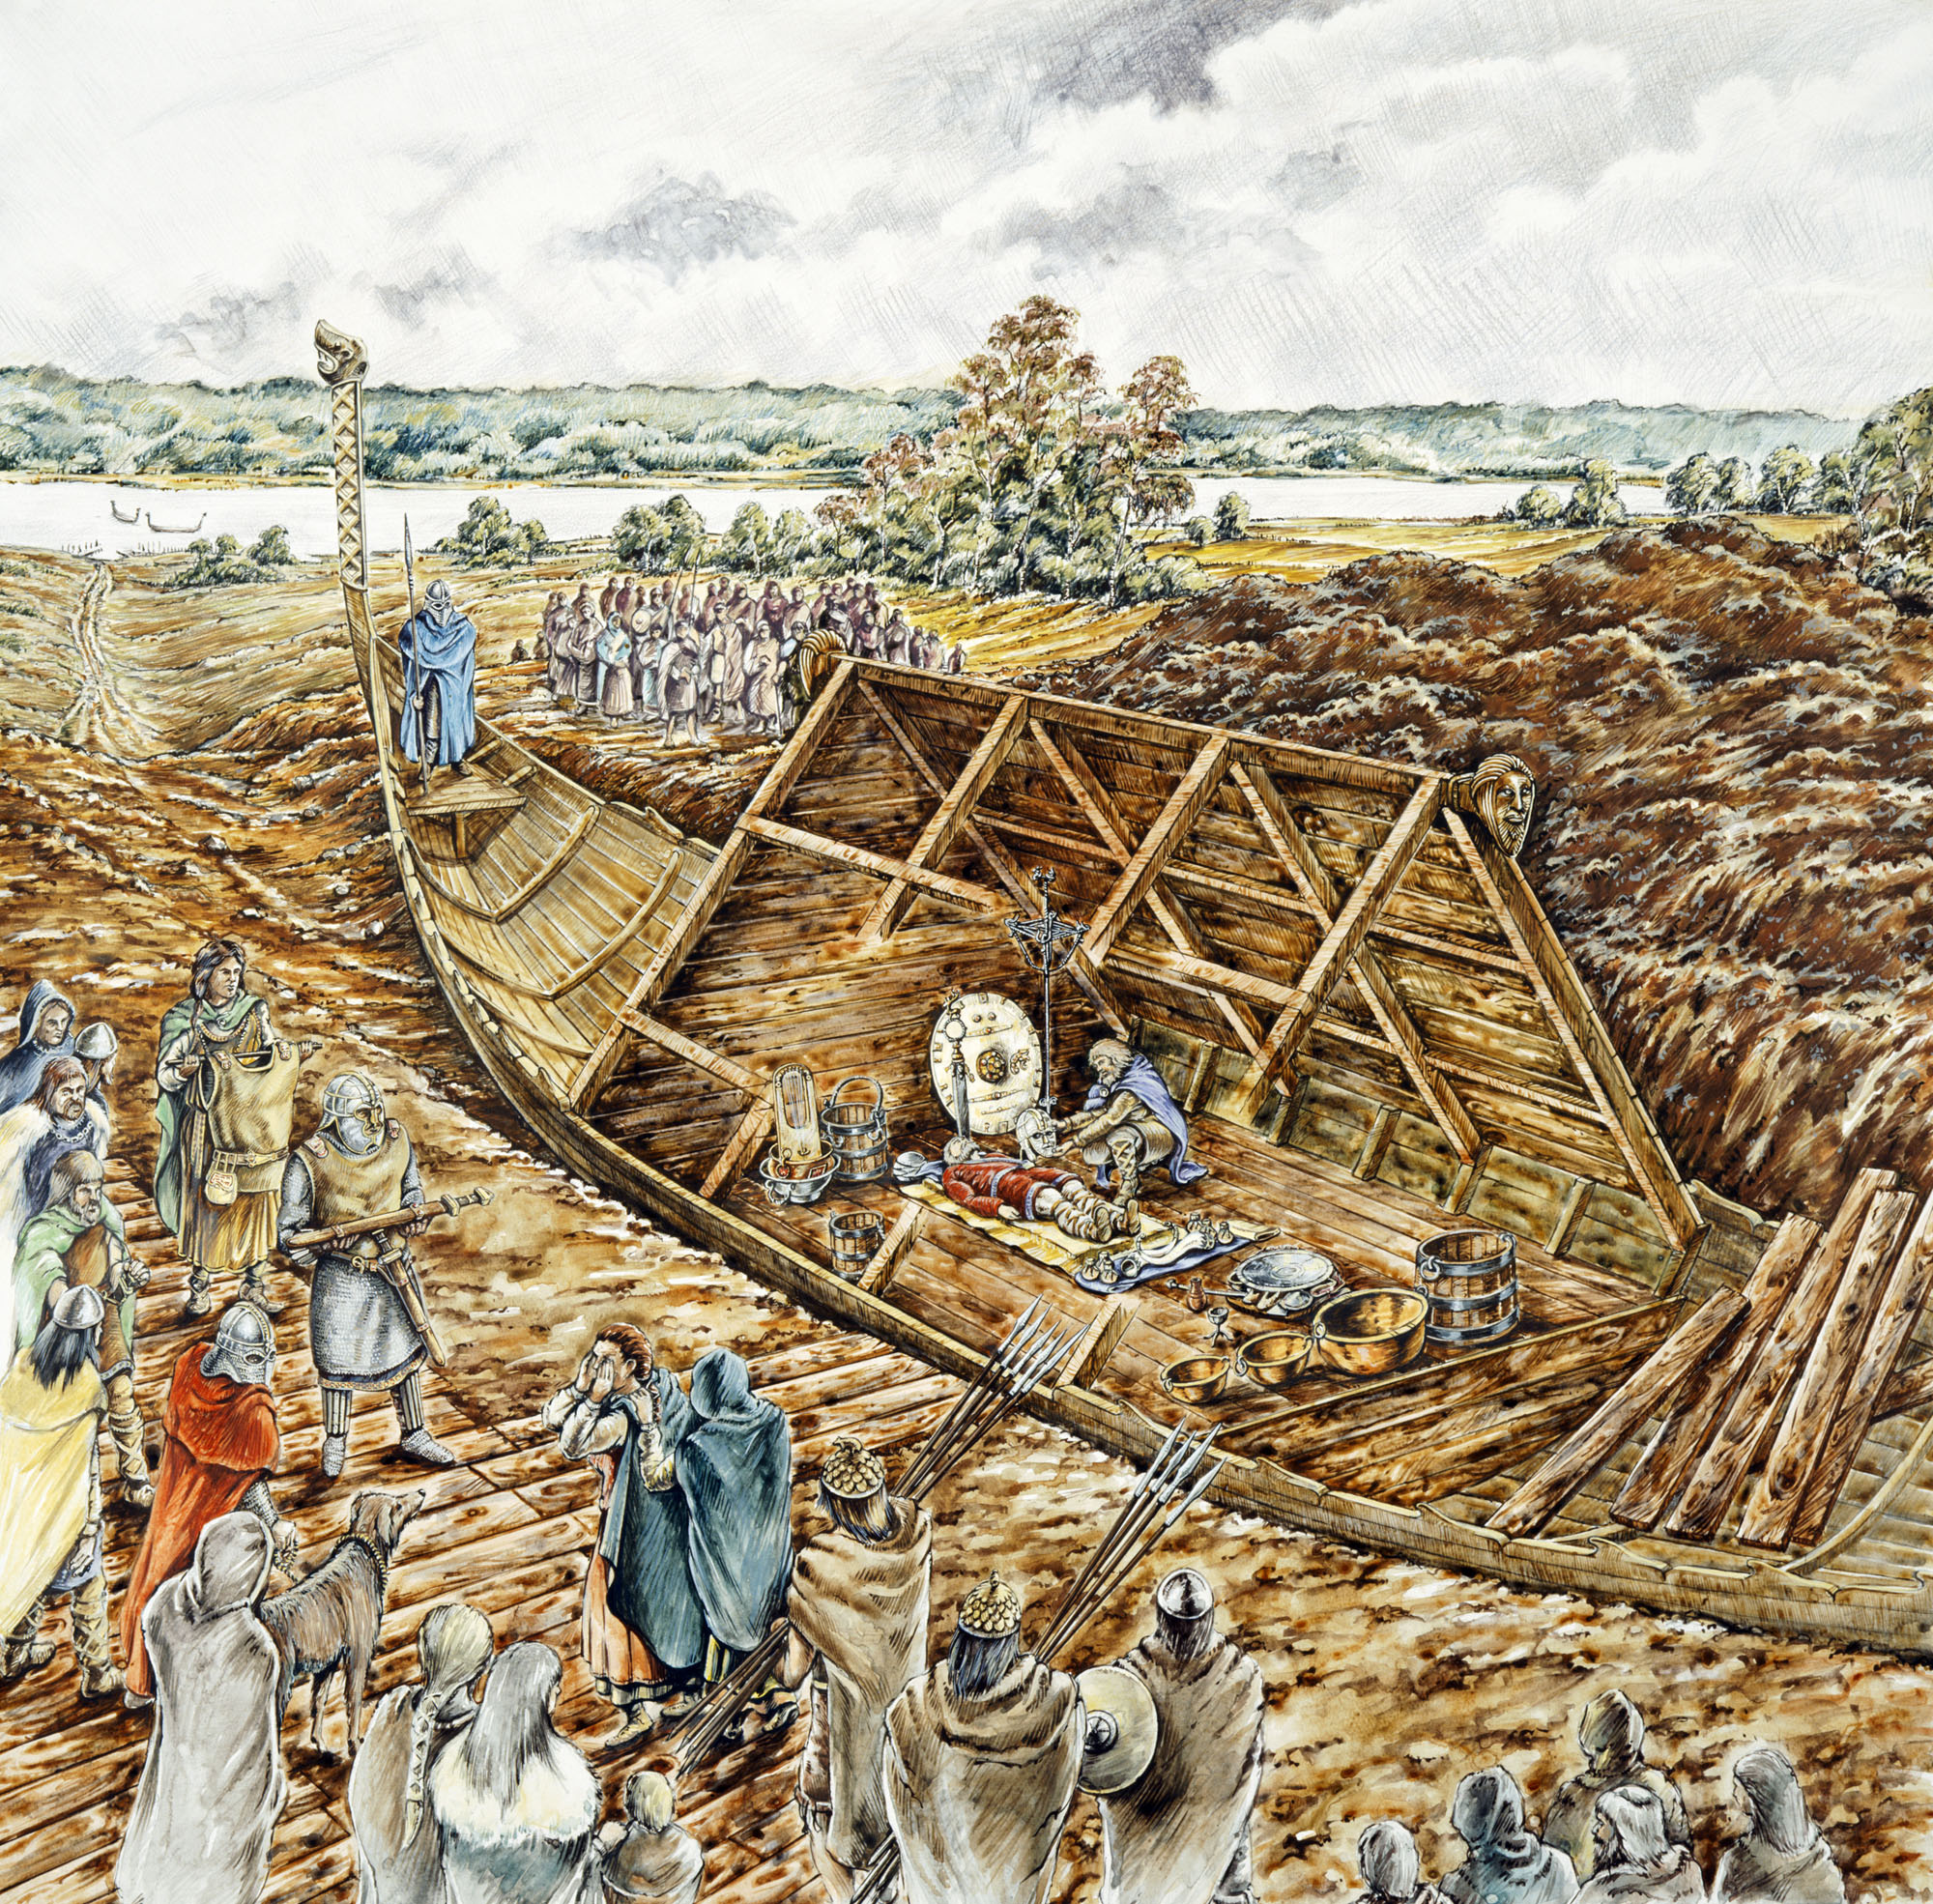 In this reconstruction drawing, the Sutton Hoo ship burial holds a wealth of Anglo-Saxon artifacts and the body of what is likely a king from East Anglia.